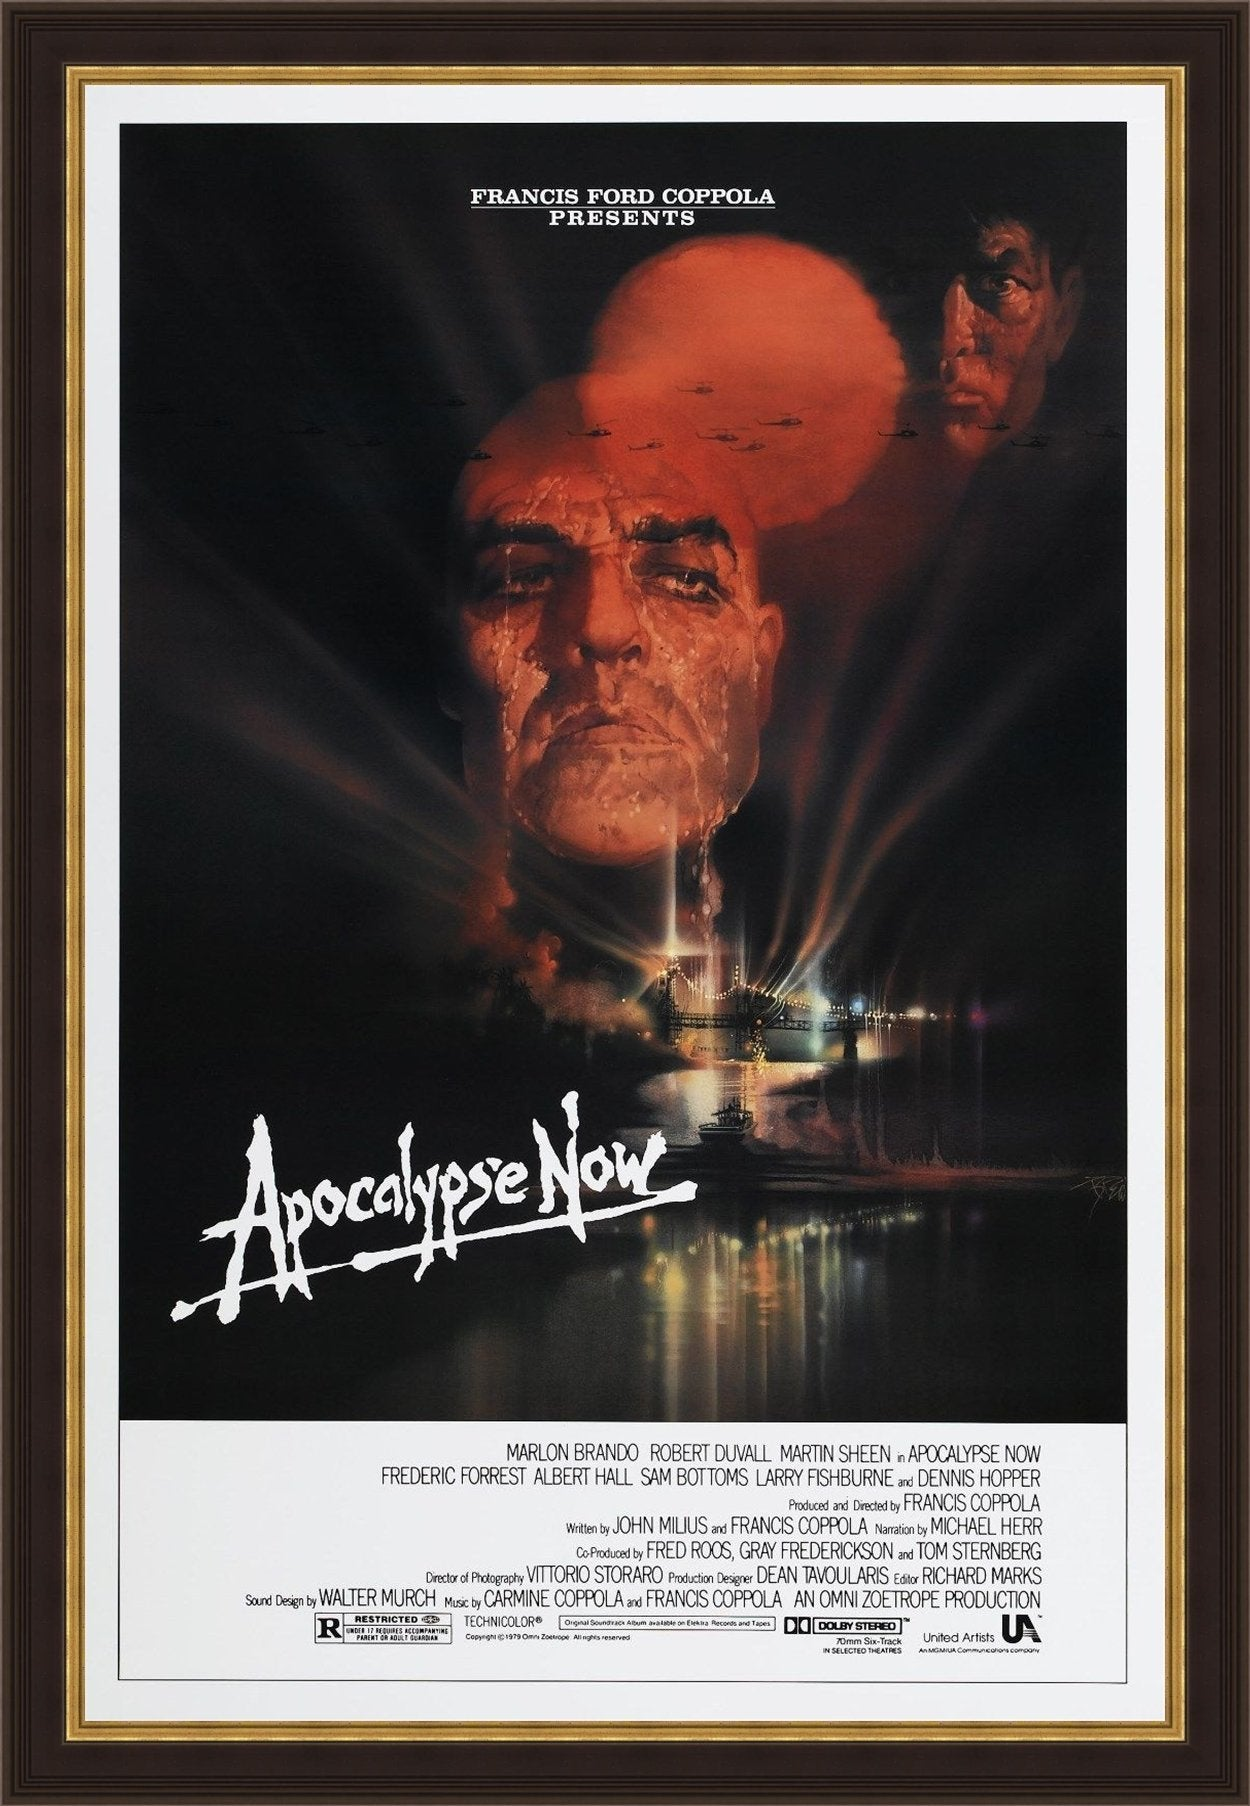 An original movie poster for the film Apocalypse Now